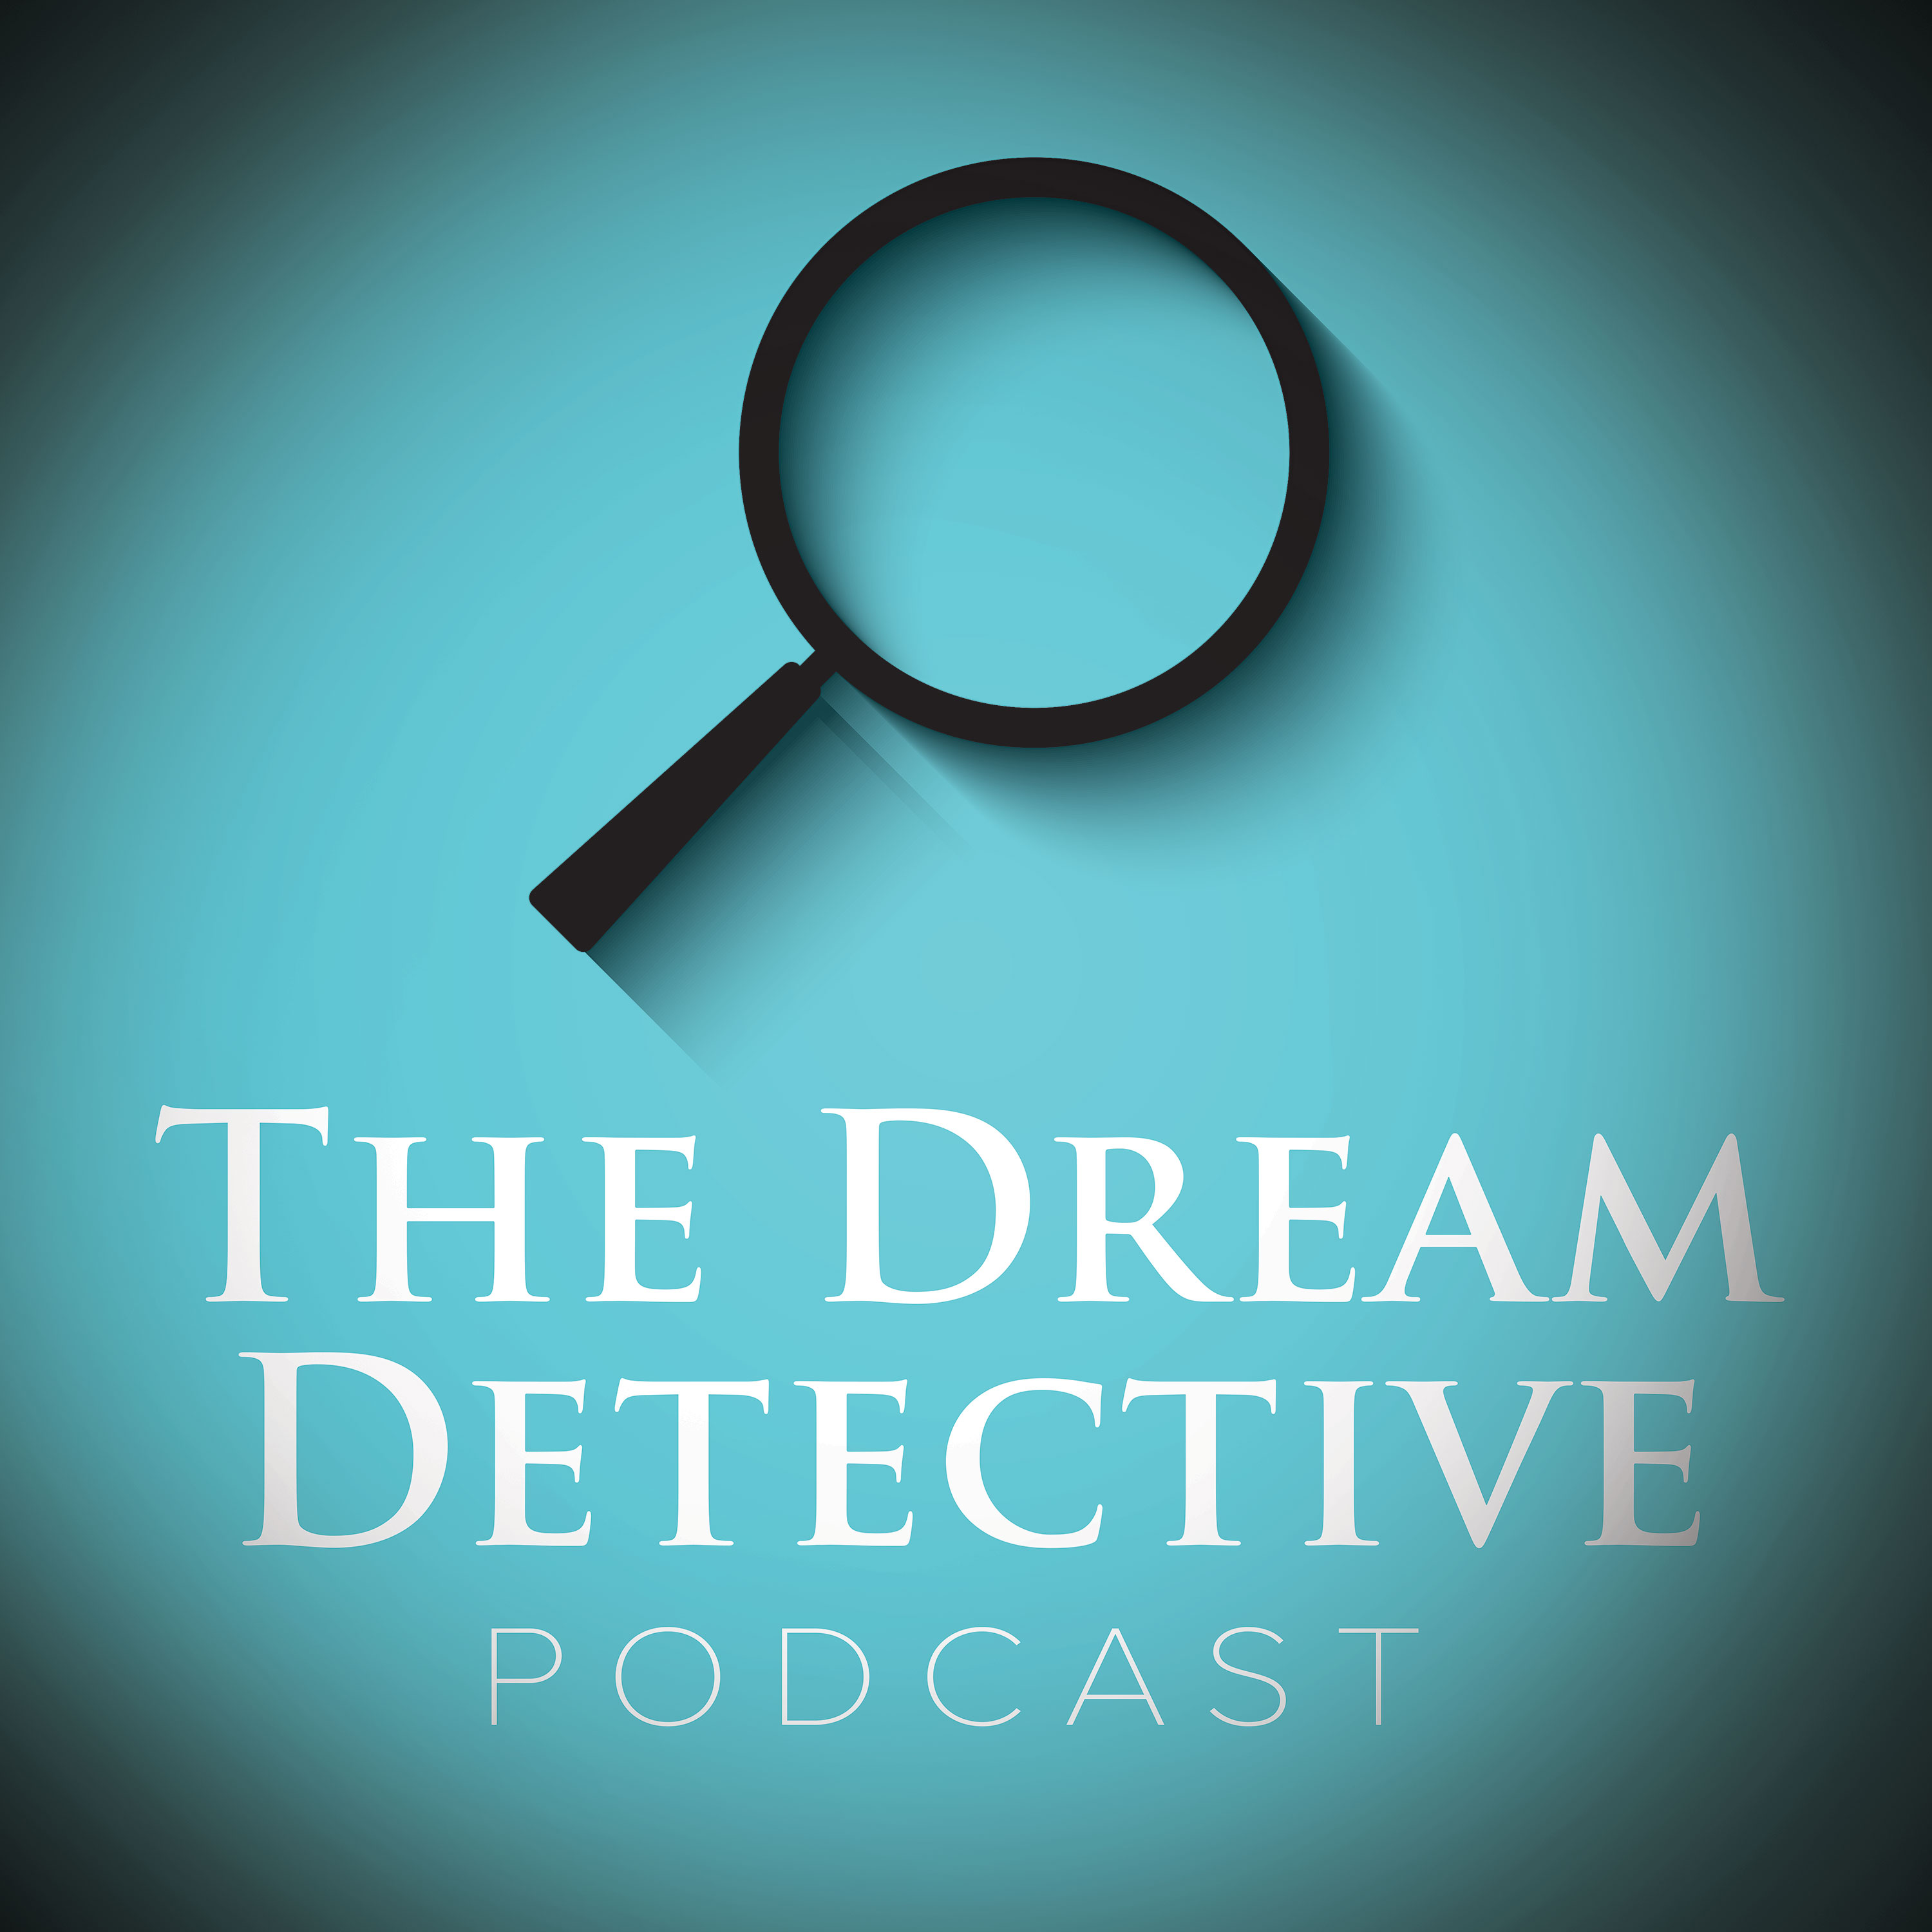 The Dream Detective Podcast show art